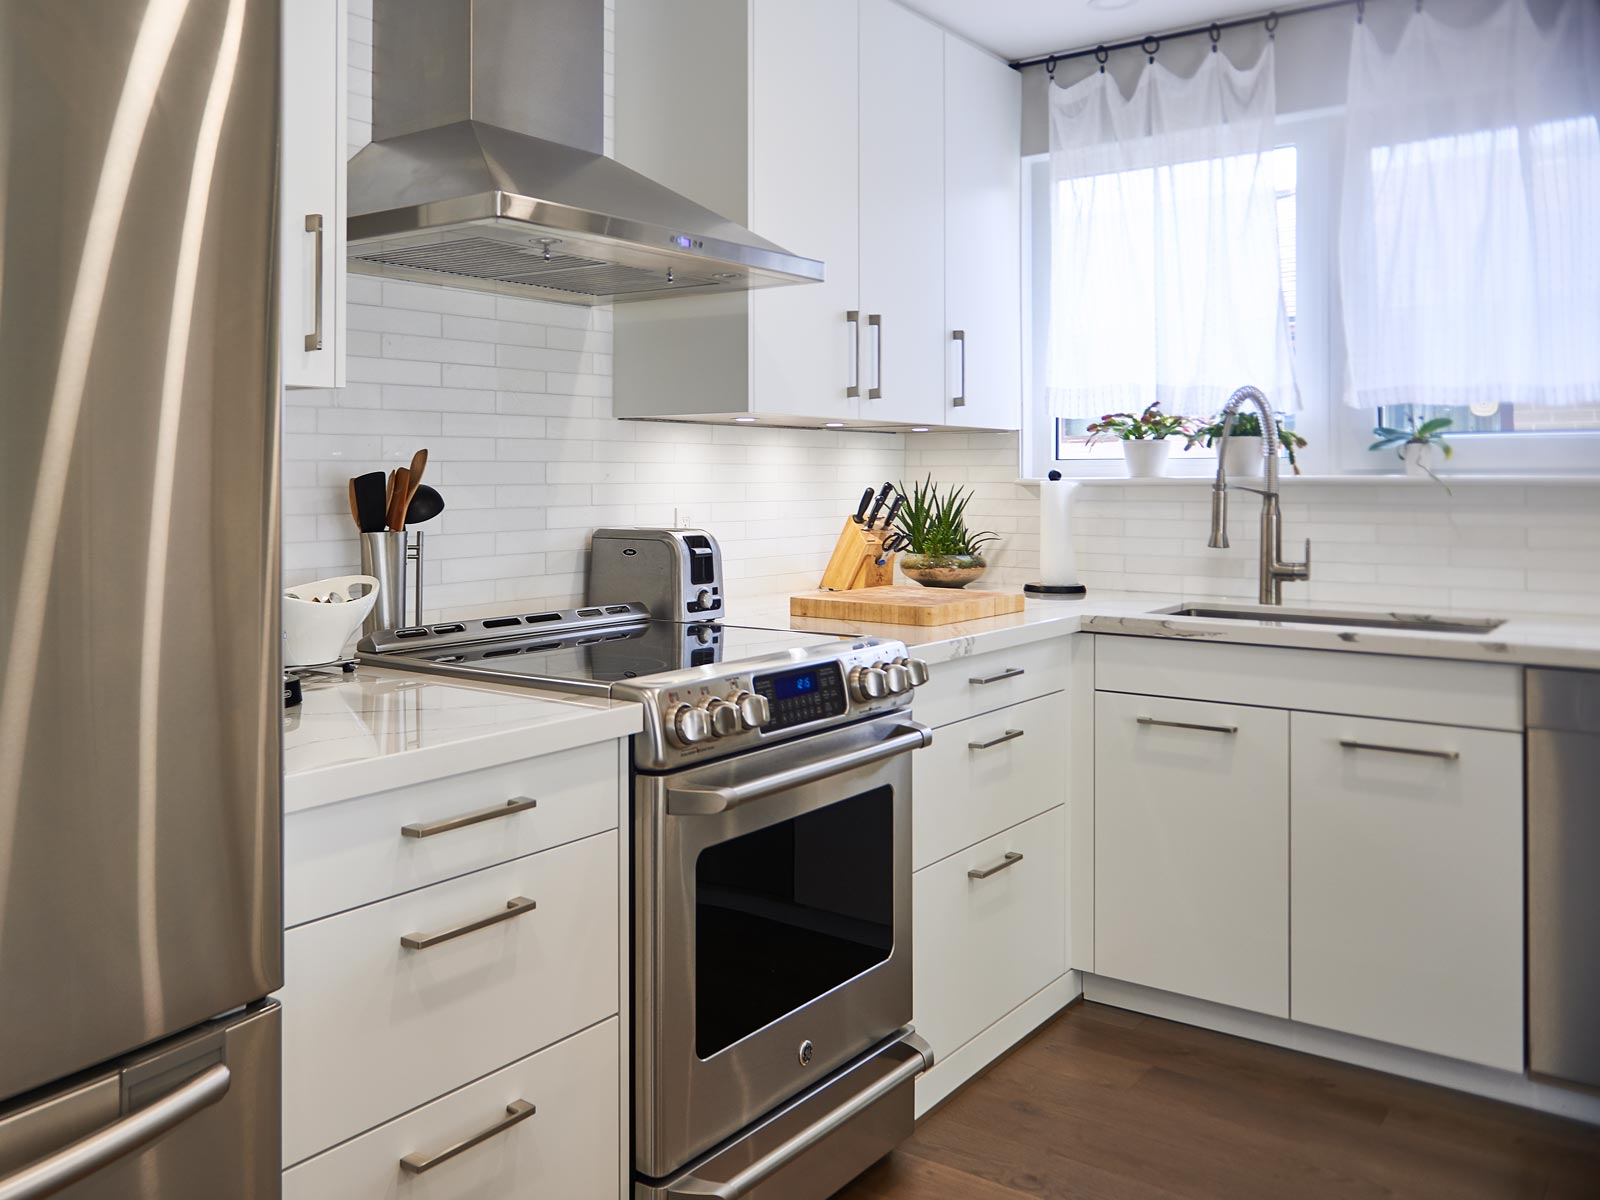 High gloss white kitchen with marble design countertop and appliances in 70th design style, Toronto